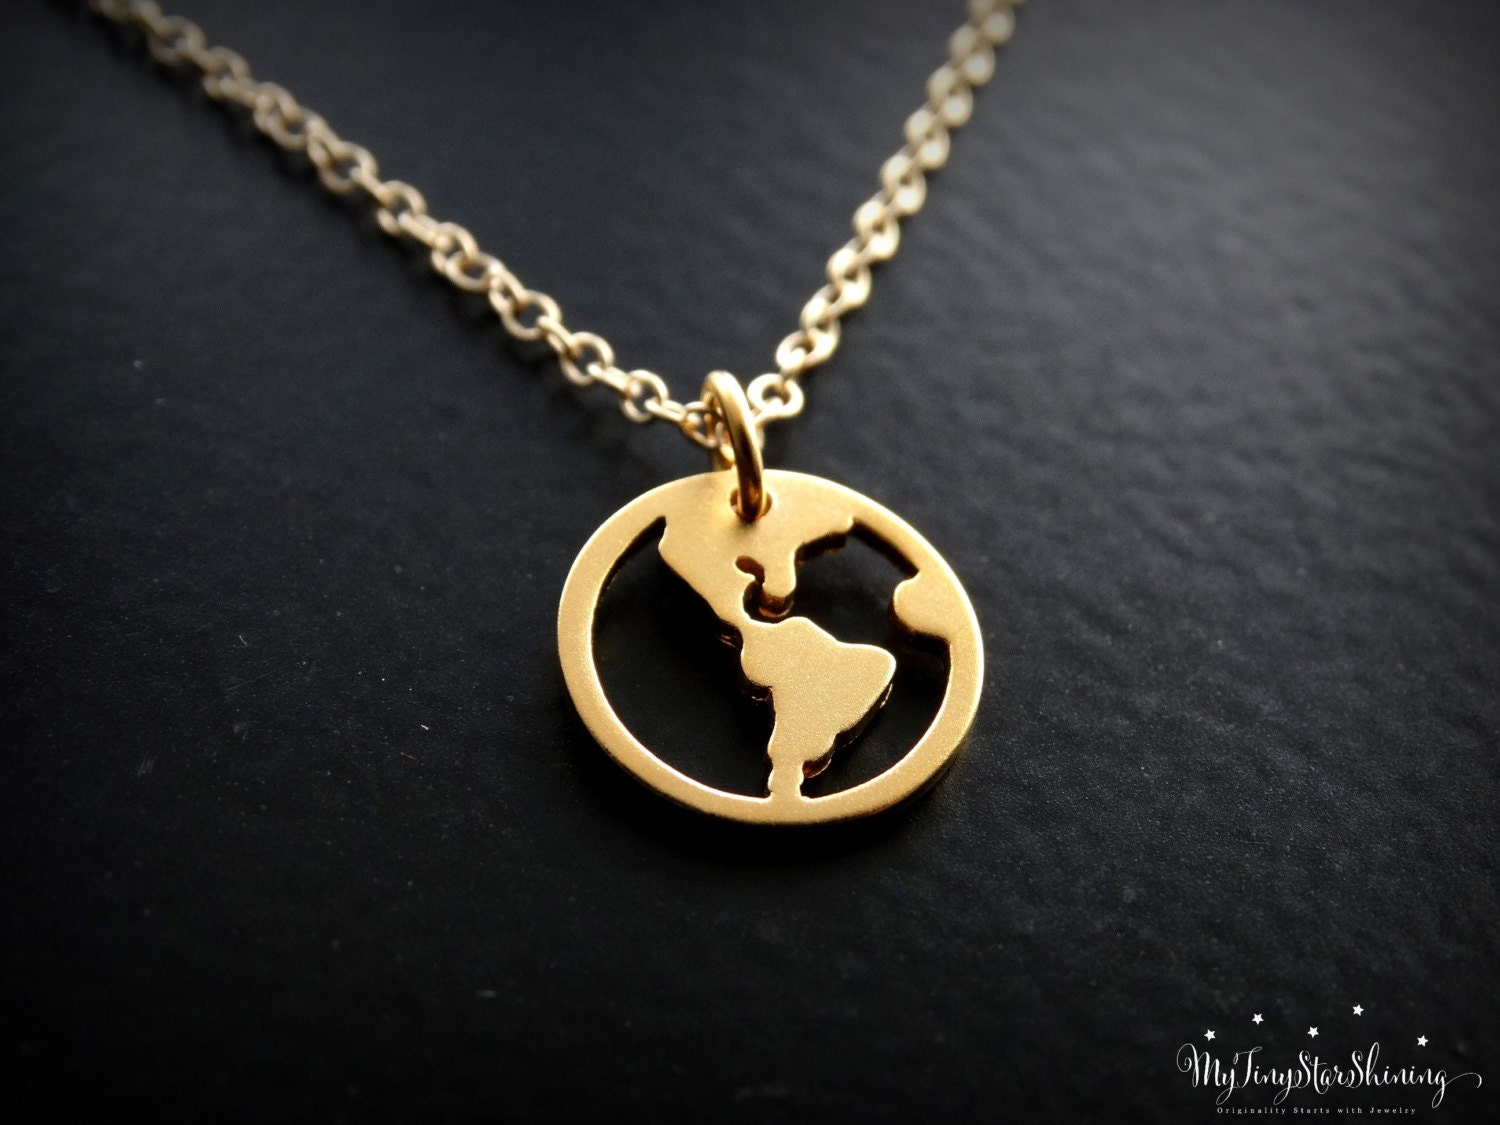 World map necklace 24k gold vermeil travel necklace gold globe world map necklace 24k gold vermeil travel necklace gold globe pendant traveler jewelry world charm gold filled necklace gumiabroncs Image collections